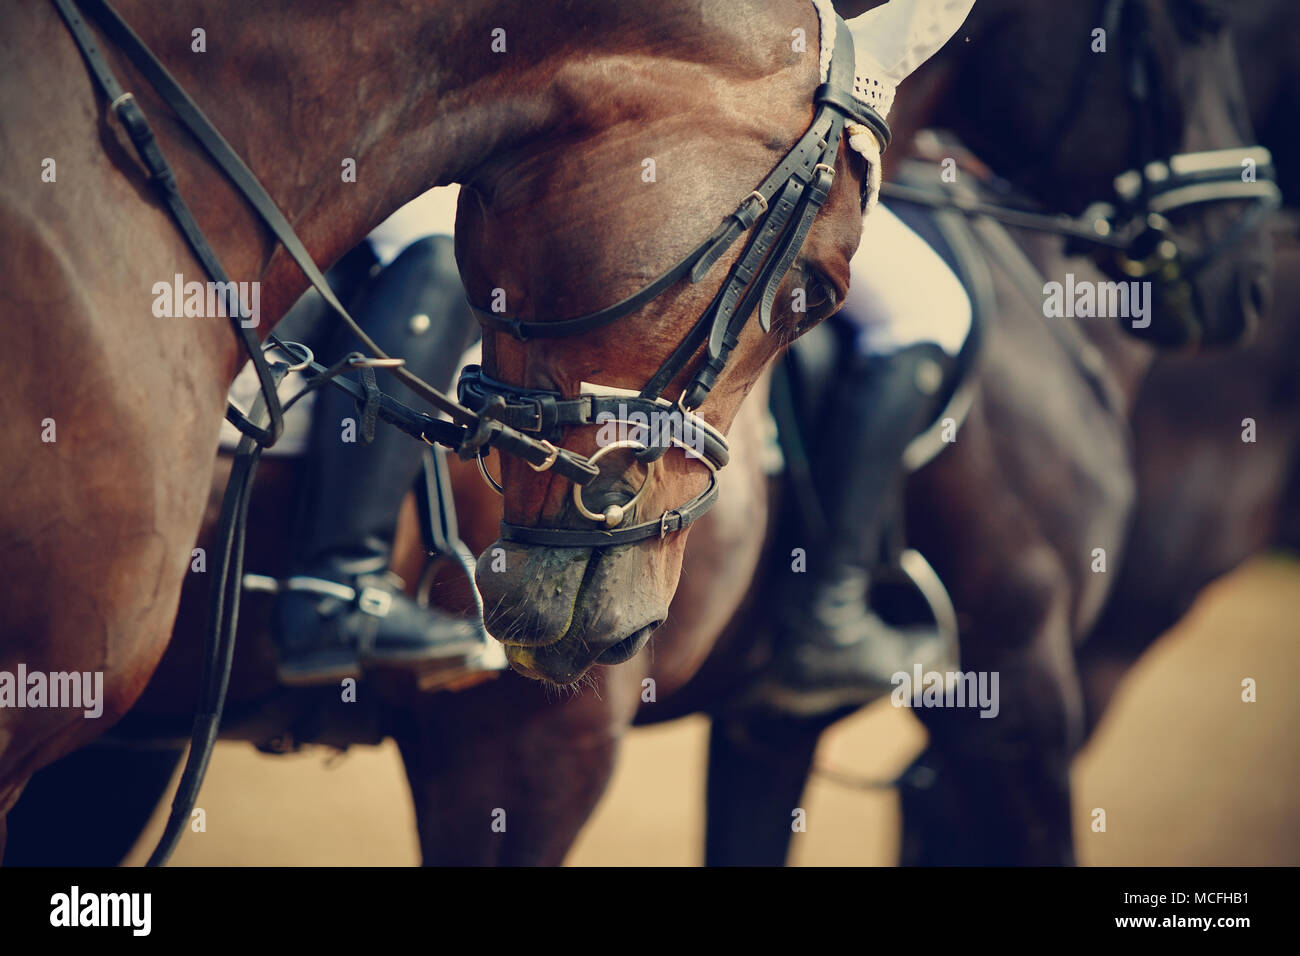 Sports horses in ammunition before competitions. Portrait of a sports stallion. Riding on a horse. Thoroughbred horse. - Stock Image